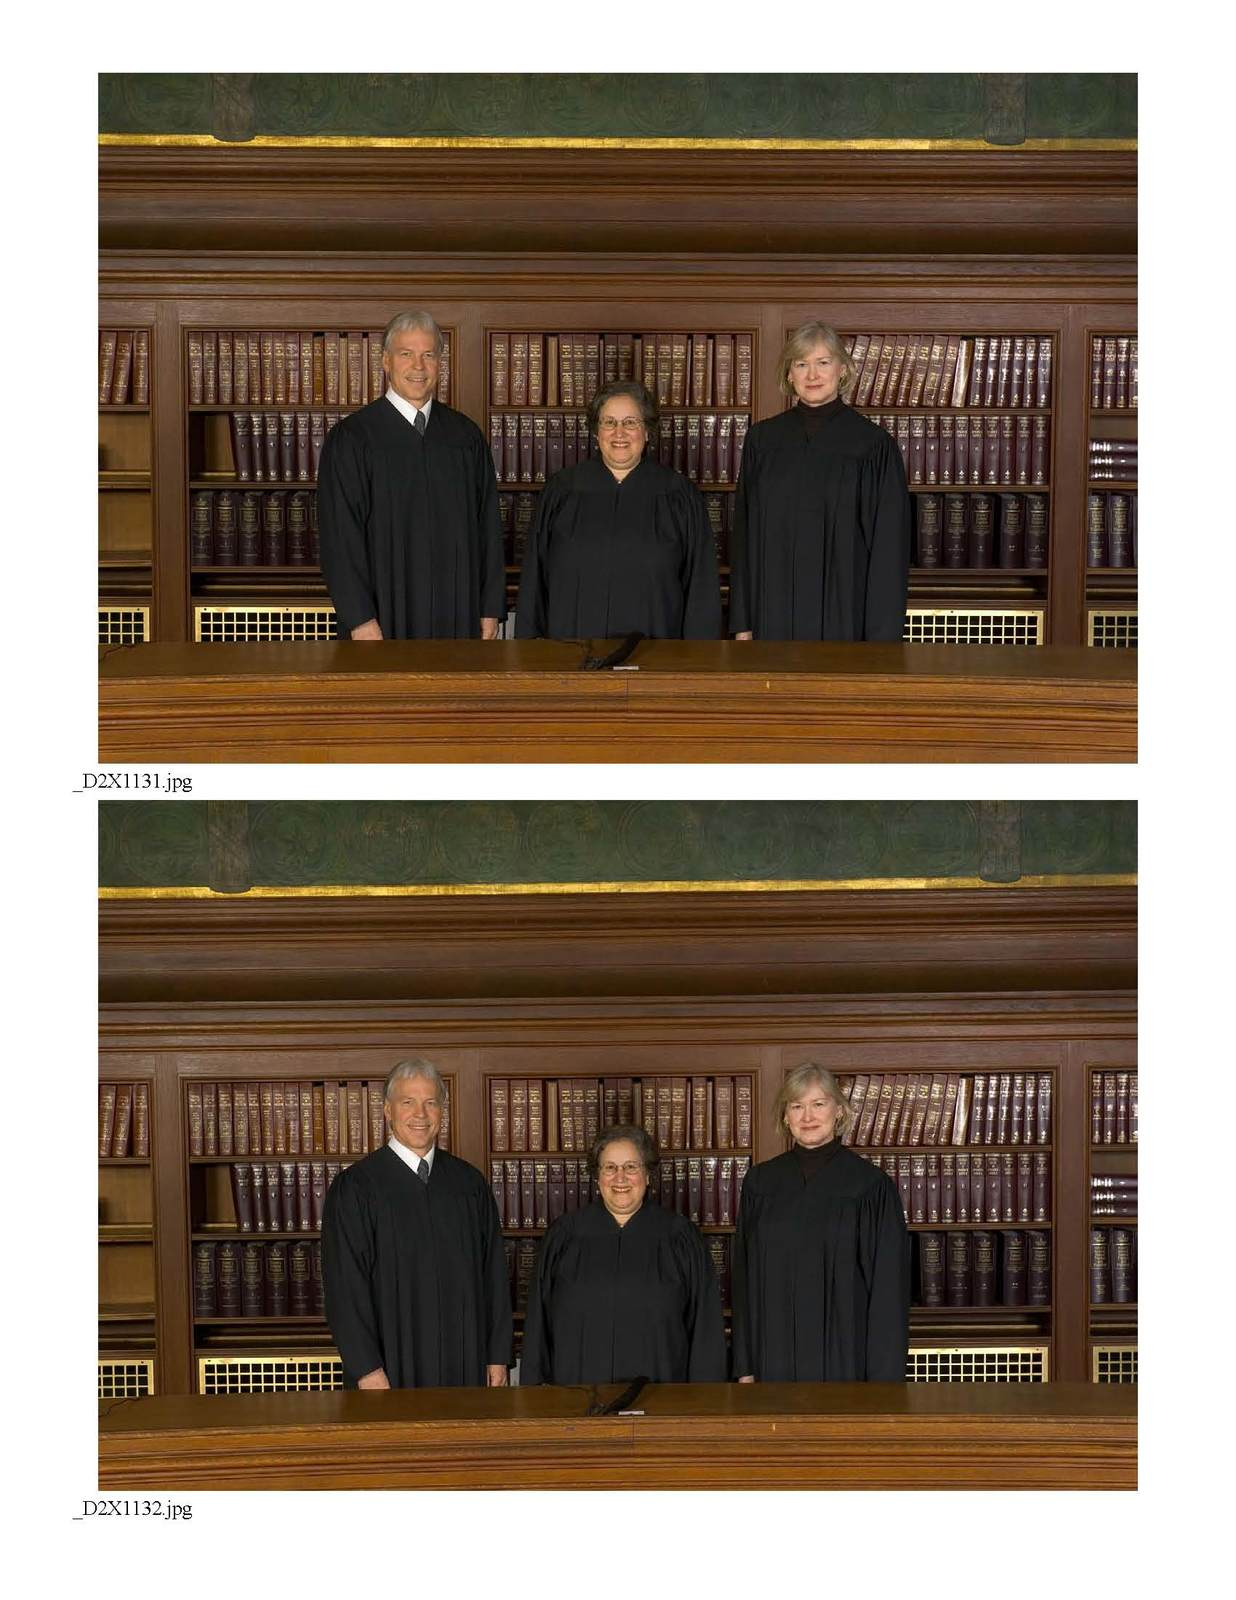 Office of Administrative Law Judges, Environmental Appeals Board - Photograph of Administrative Law Judges on the Environmental Appeals Board [412-APD-32-Judges_2_Page_4.jpg]